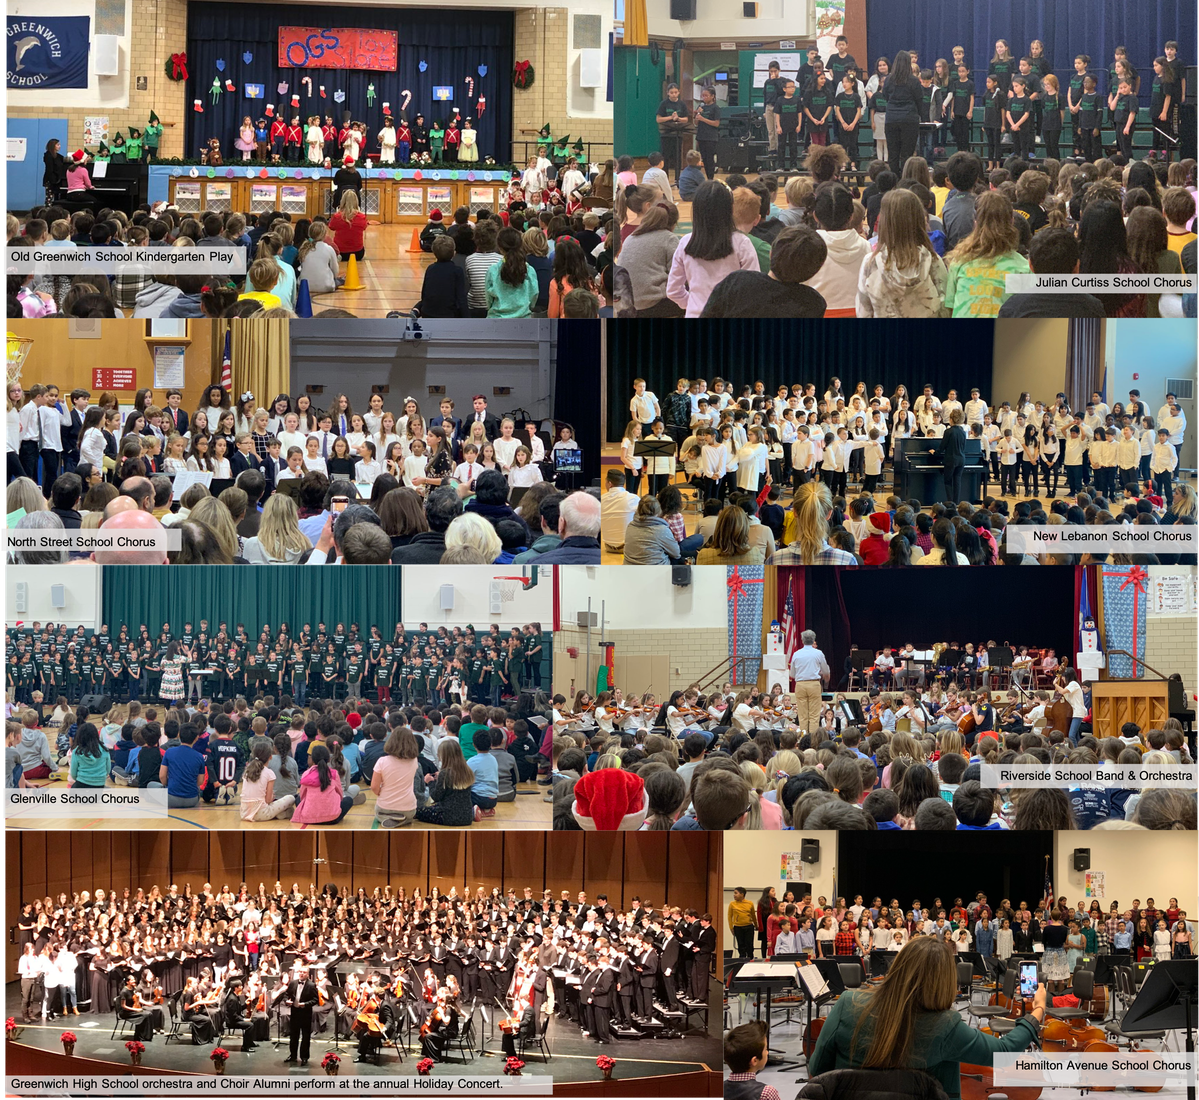 Holiday Concerts across multiple Greenwich Public Schools